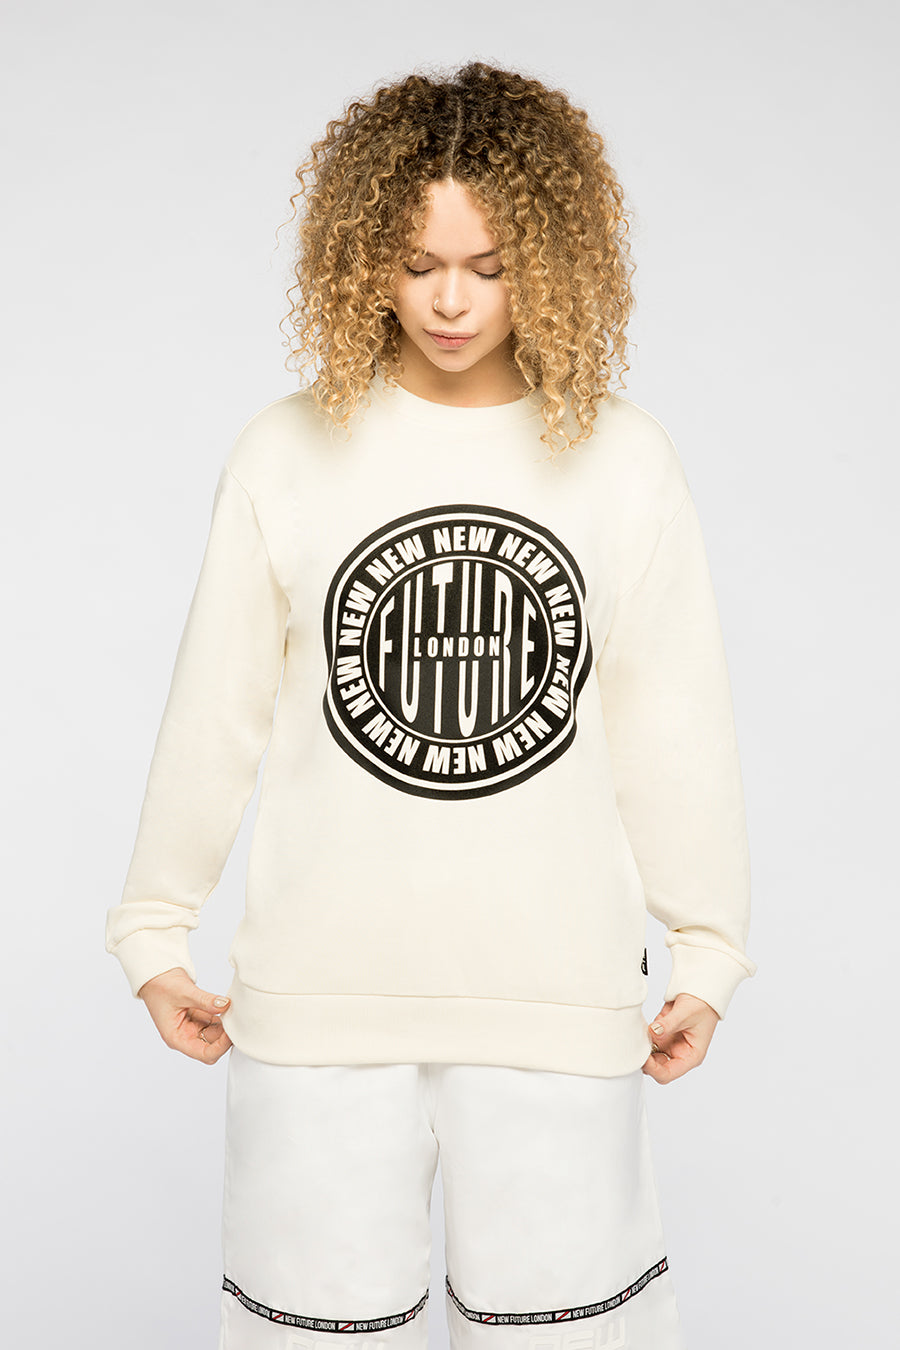 new_future_london_stamp_sweat_wht-1.jpg